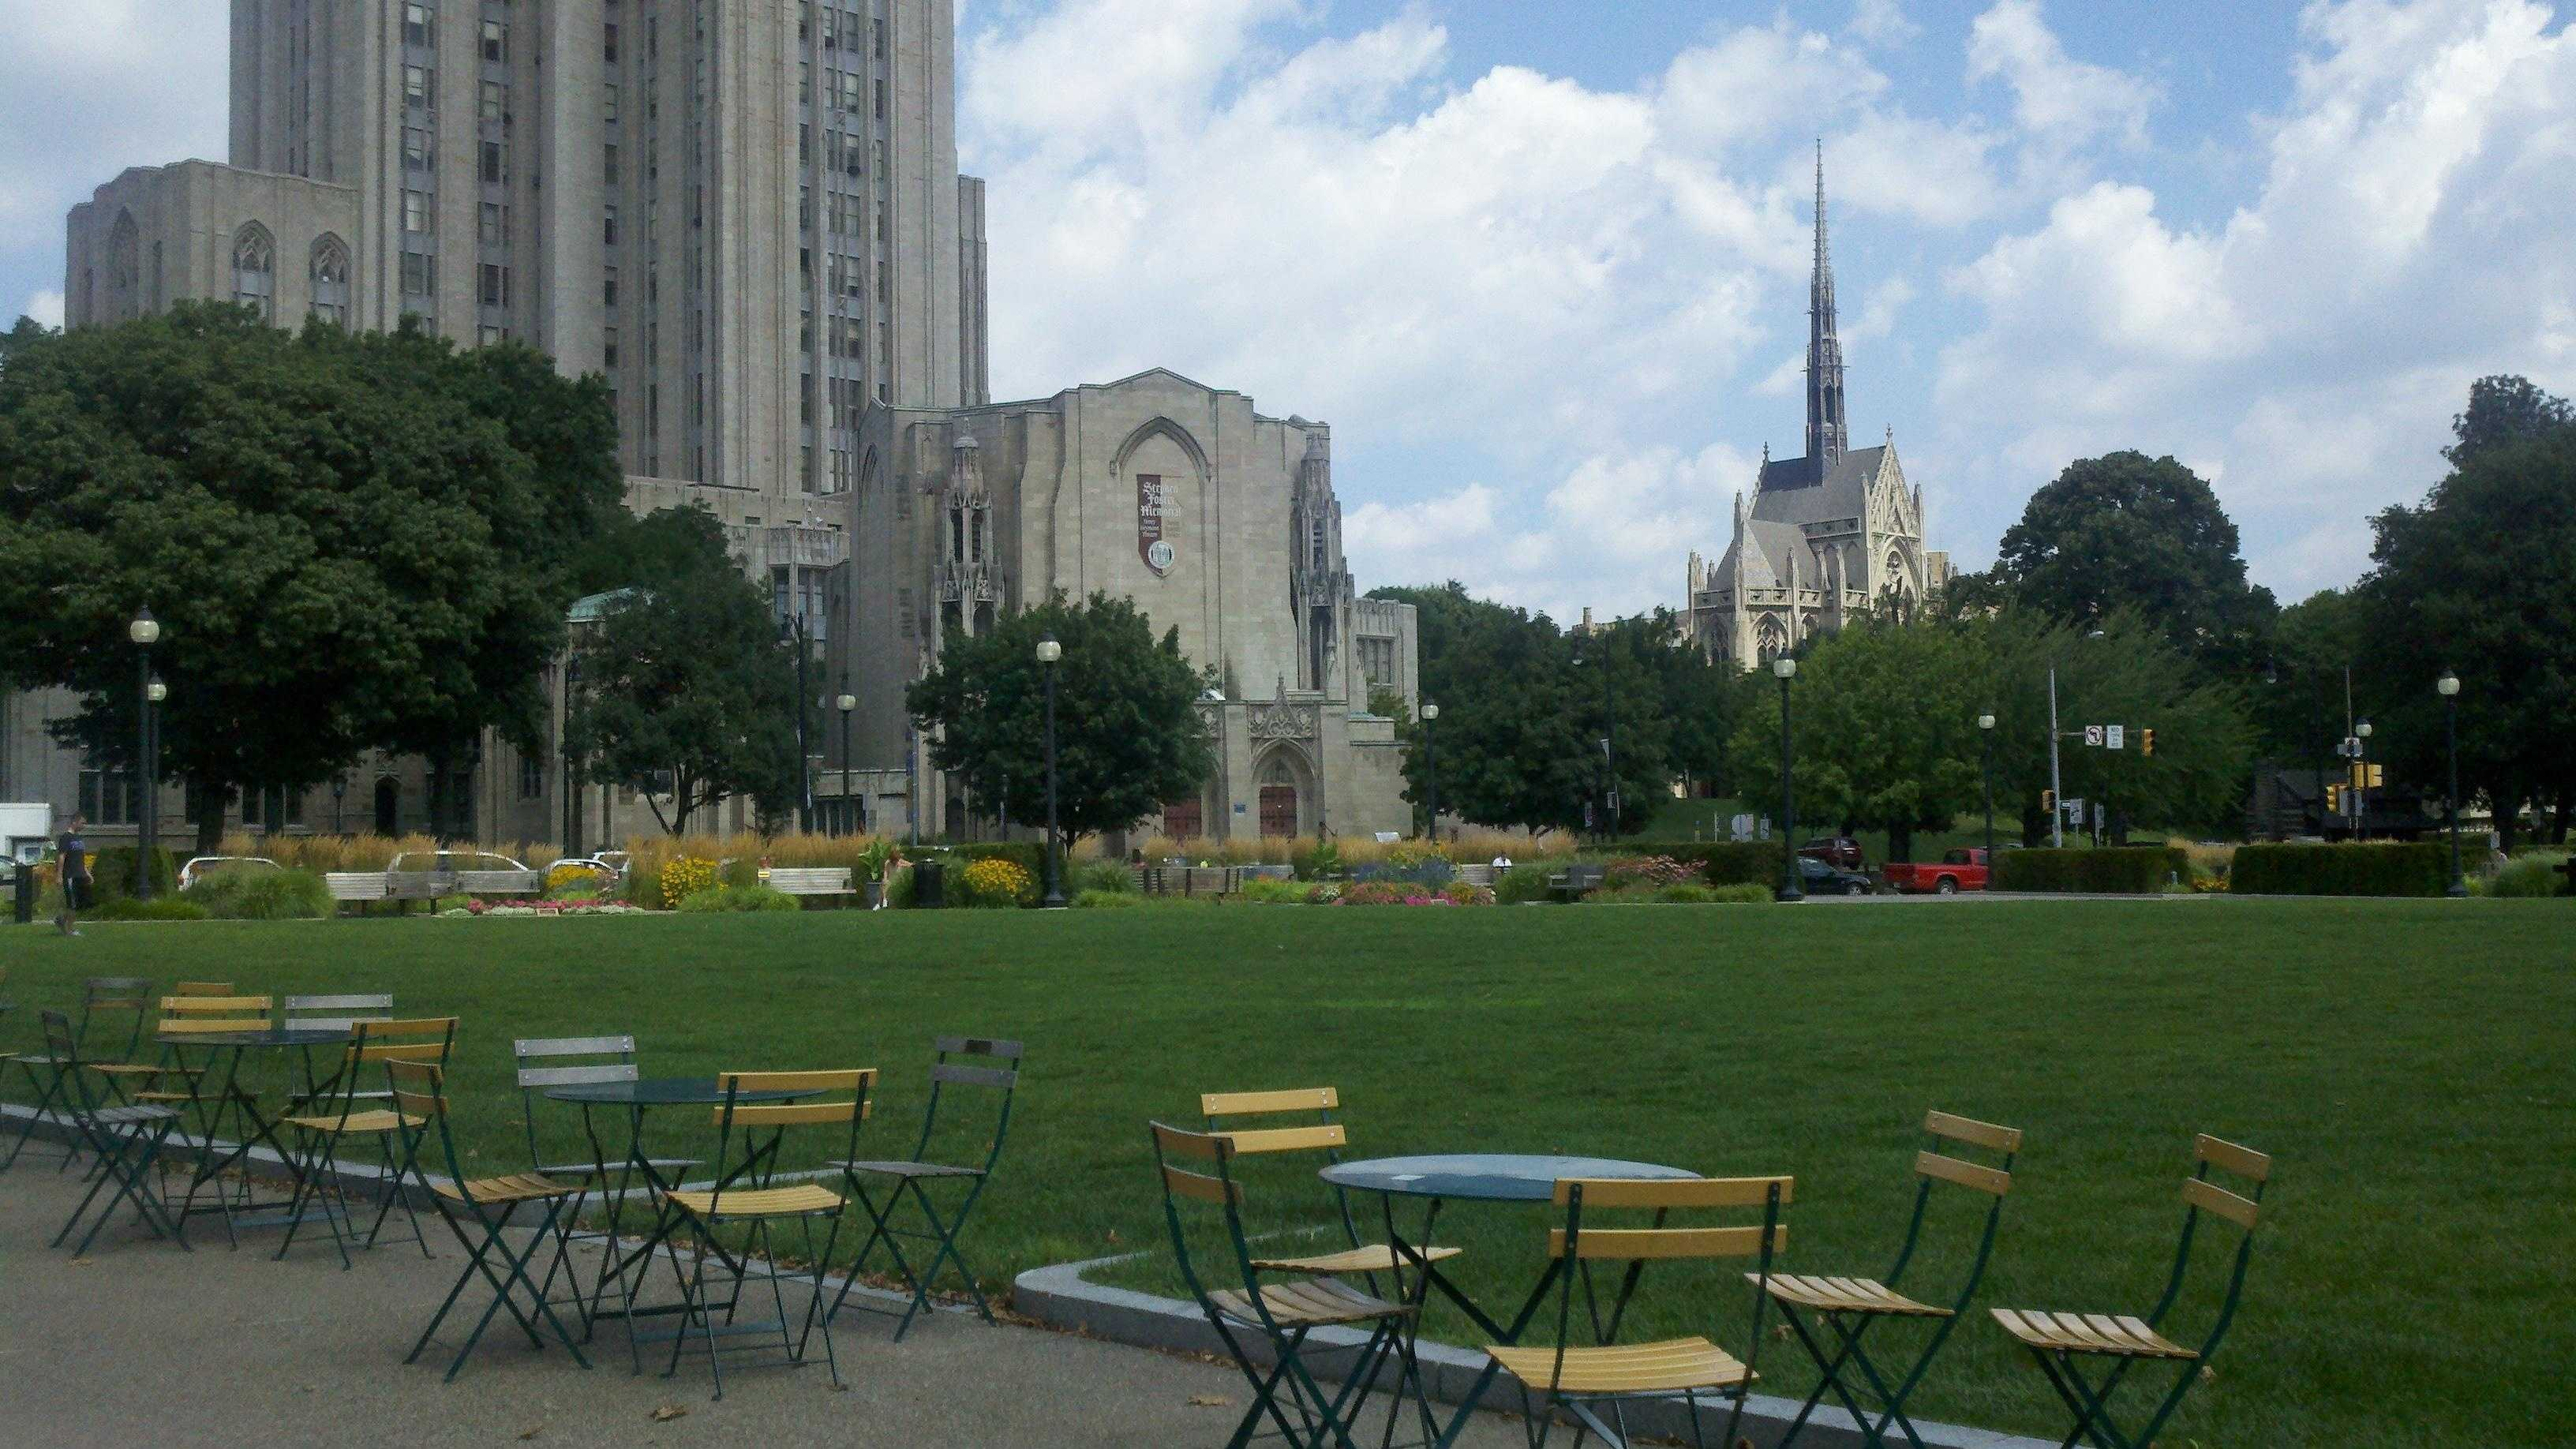 University of Pittsburgh campus in Oakland